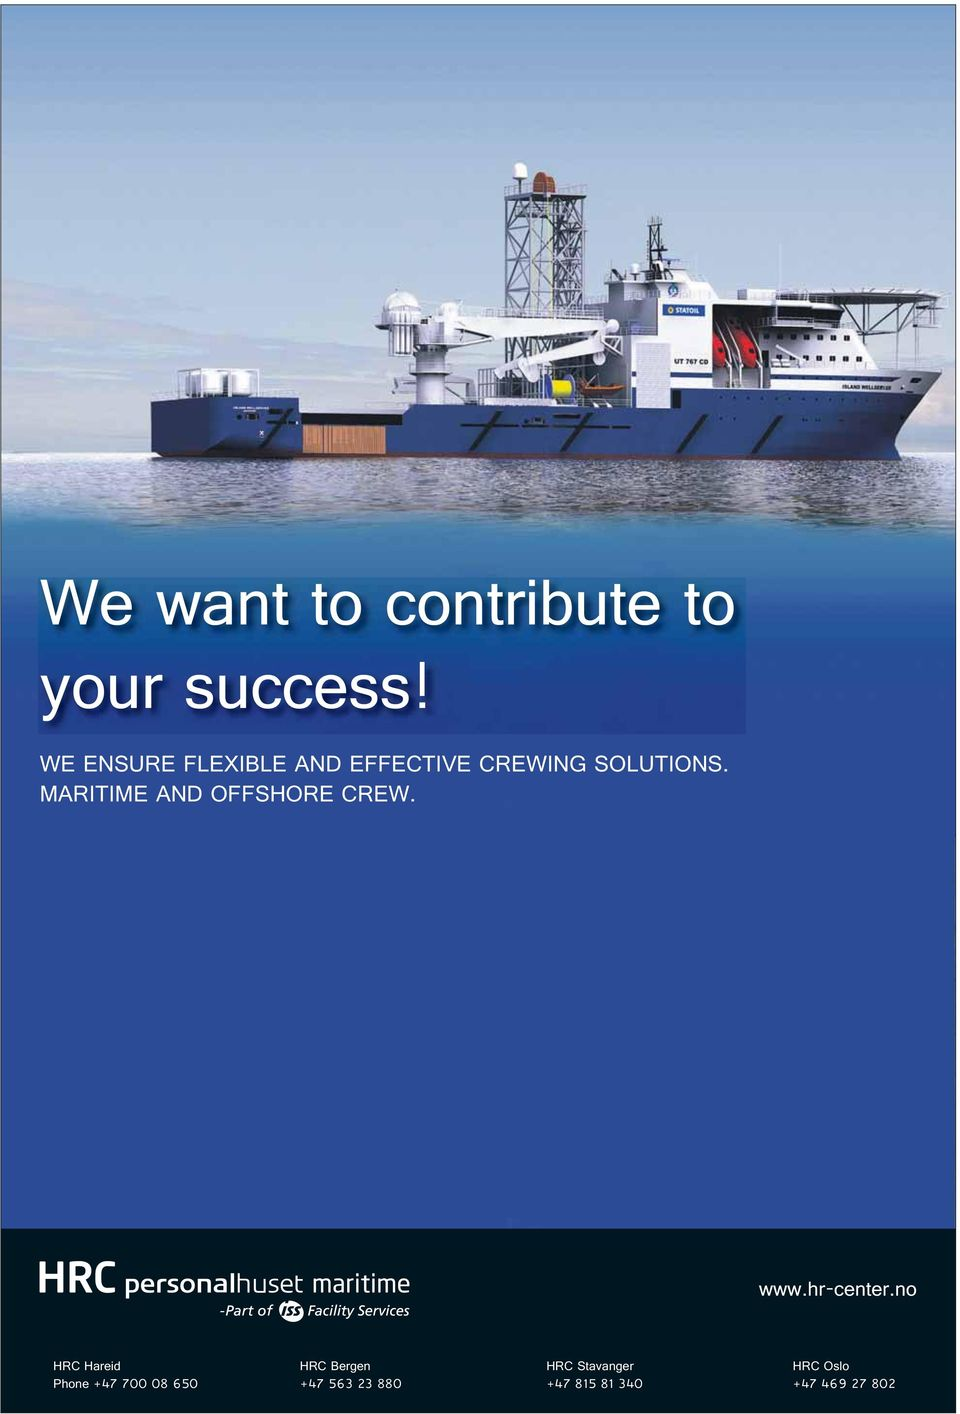 MARITIME AND OFFSHORE CREW. www.hr-center.